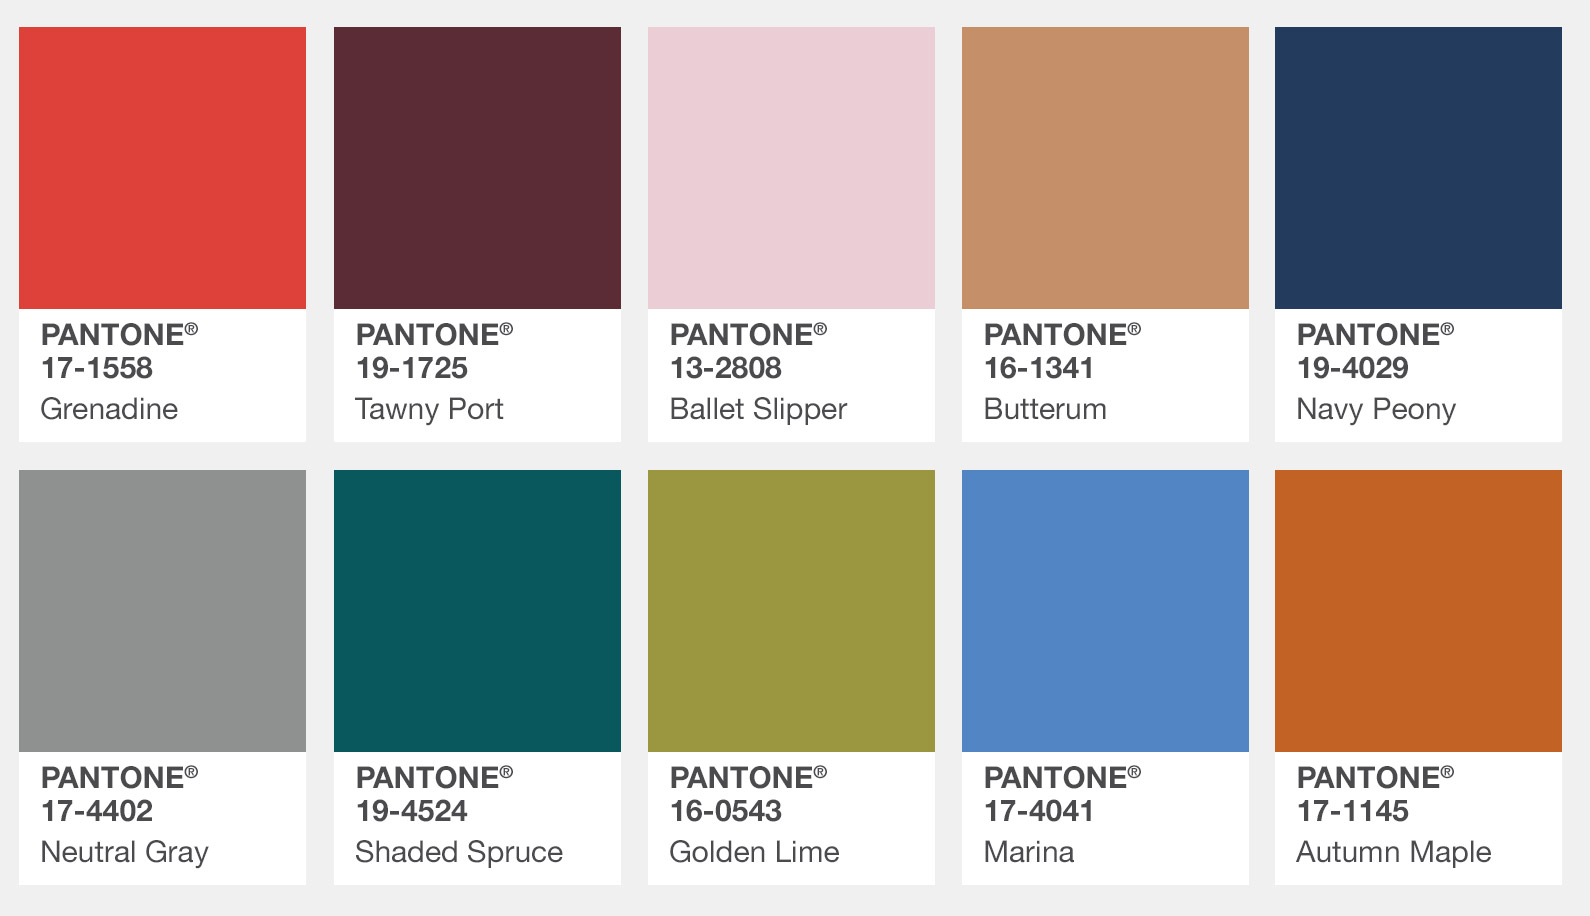 pantone-color-swatches-palette-fashion-color-report-fall-2017-new-york.jpg (115.17 Kb)